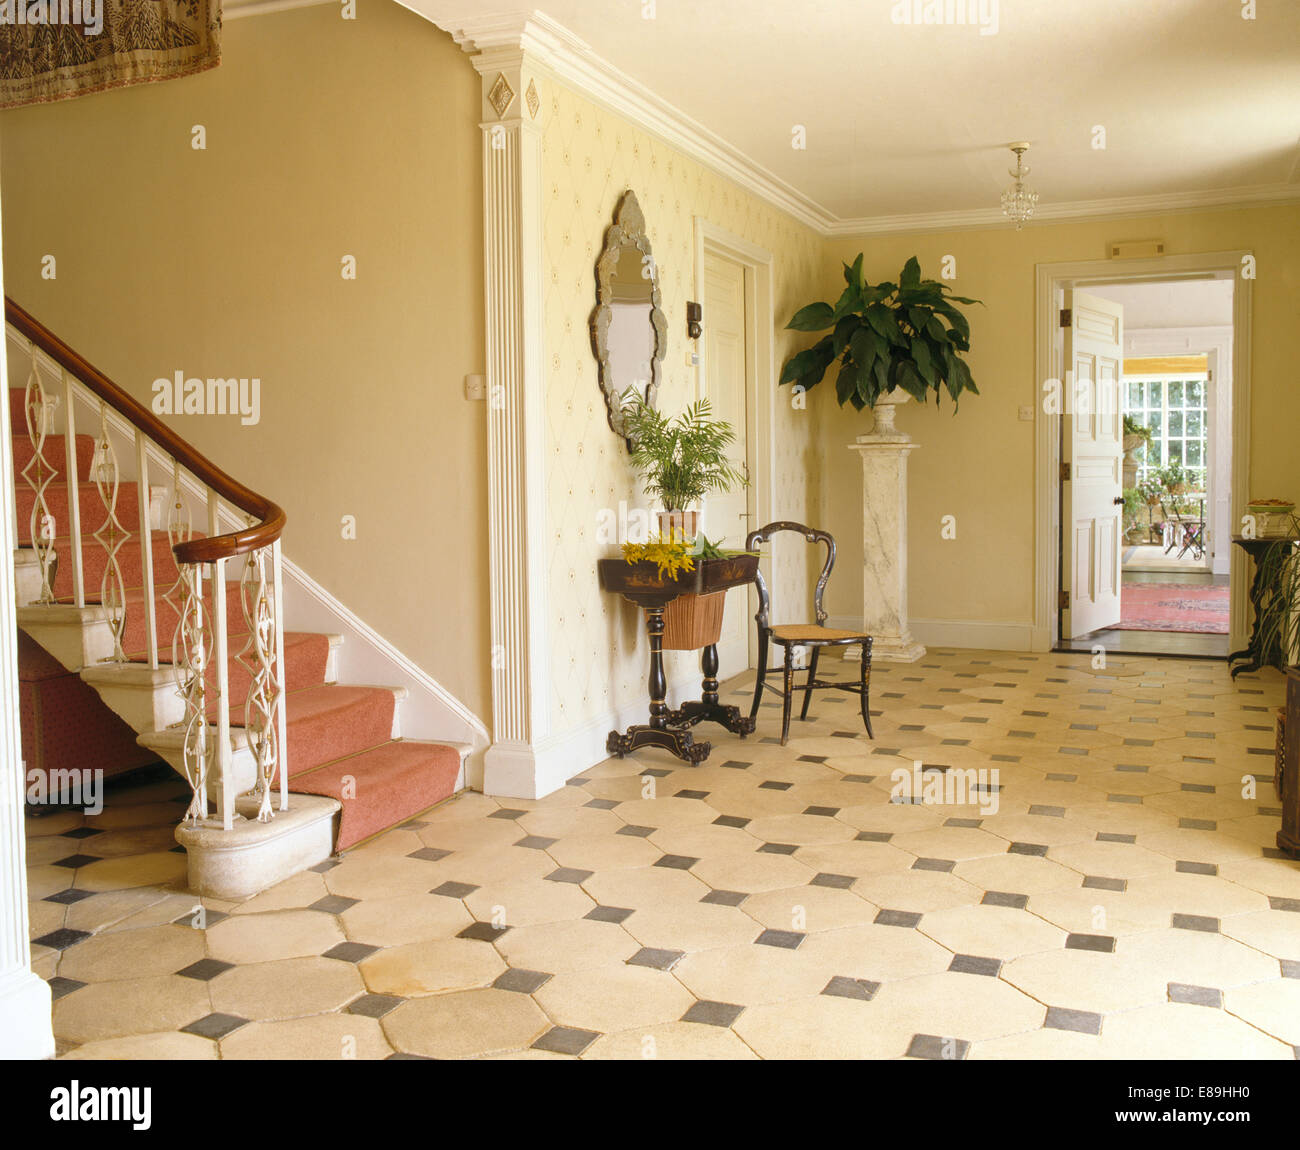 Black+white Tiled Floor In Large Country Hall With Boston Fern On Plinth  And Staircase